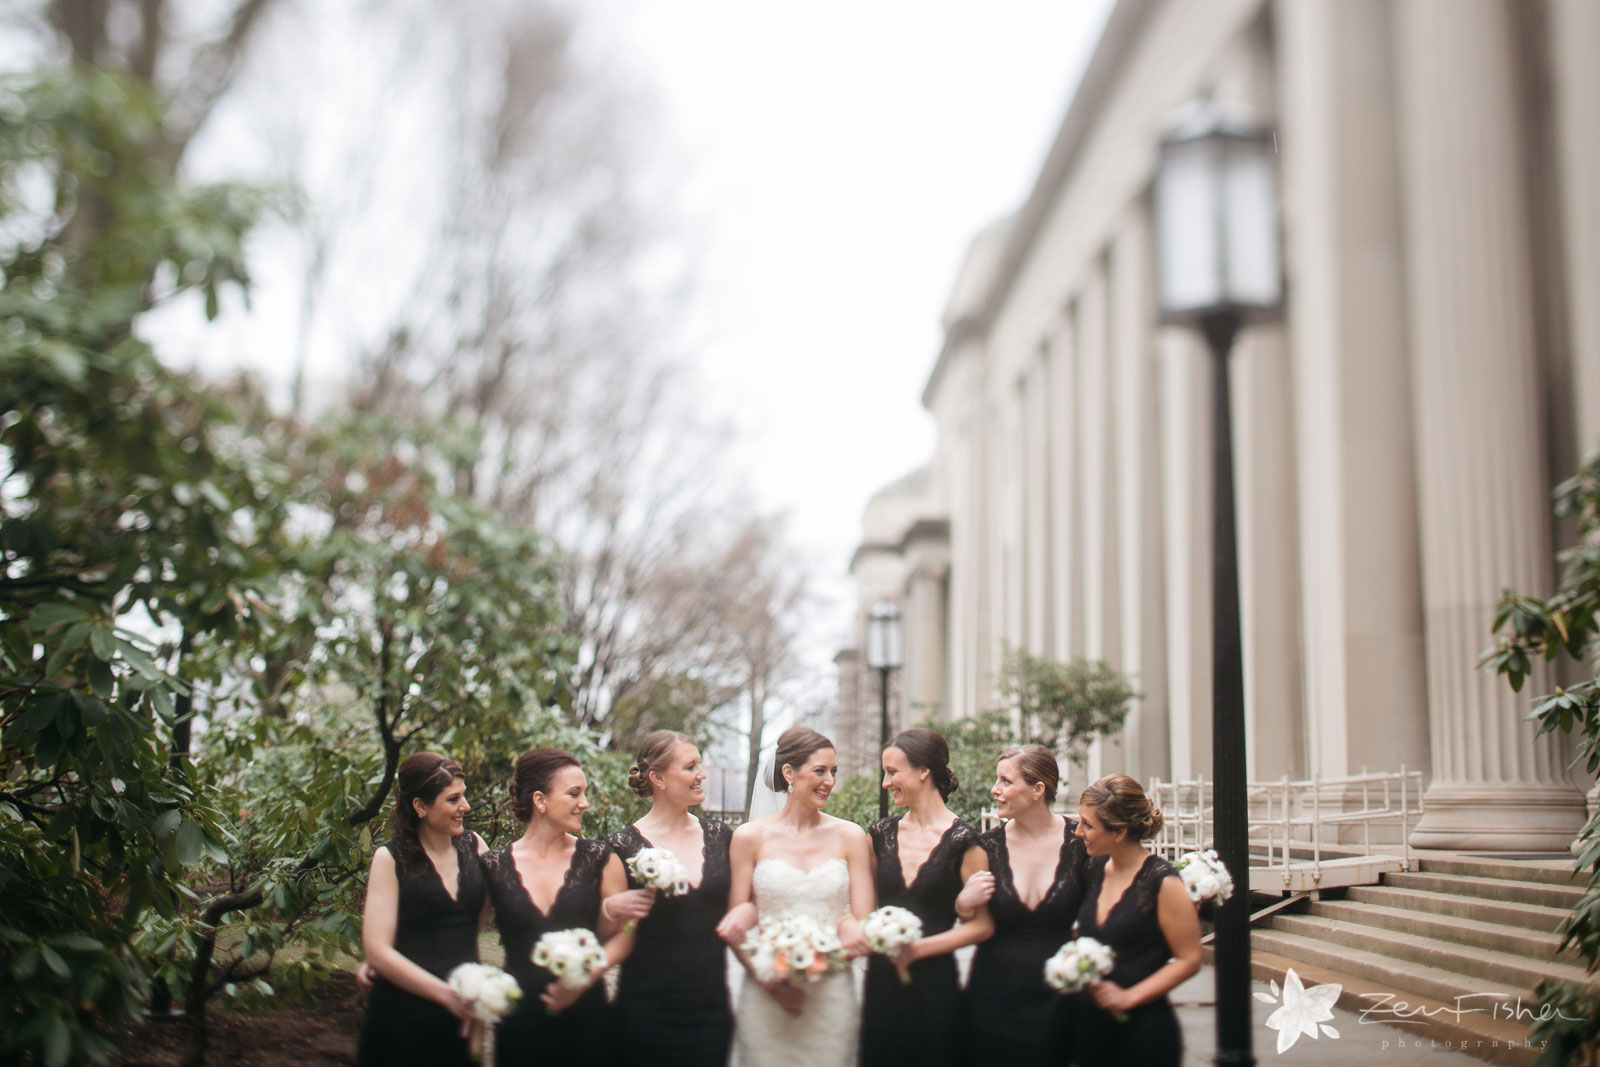 Bride and bridal party portrait looking at each other, smiling in garden with architectural columns.